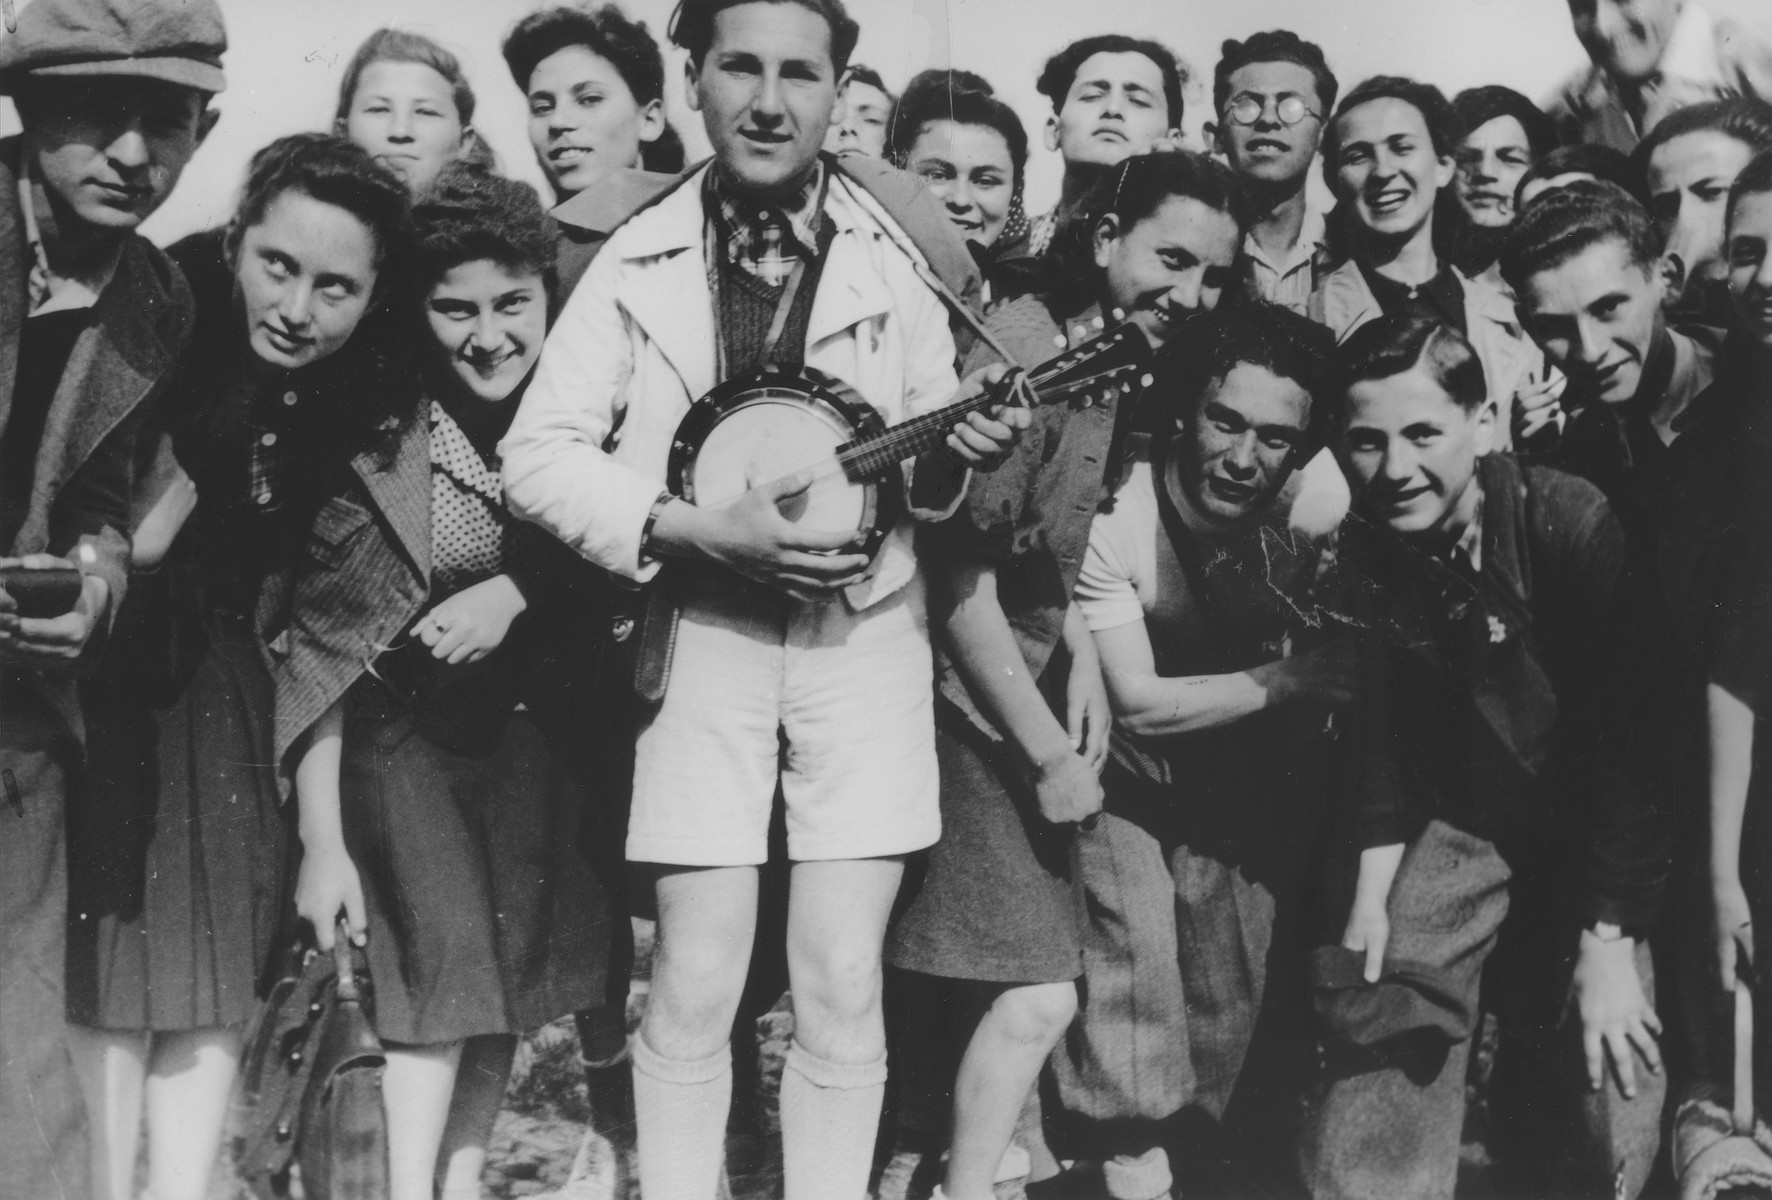 Gyuszi Lovi plays the banjo for his fellow students at the Hebrew gymnasium in Mukachevo during a Lag b'Omer holiday celebration.  Those pictured include Eugen Schoenfeld (Tuli), Olga Joszef, Olga Weiss, Gyuszi Lovi, Lajos Bodek, Ervin Stern, Gyongyi Kirshenbaum, Hersi Birnbaum and Agi Mermelstein.  Neurath is pictured in the back with glasses and Guttman is at the bottom right.